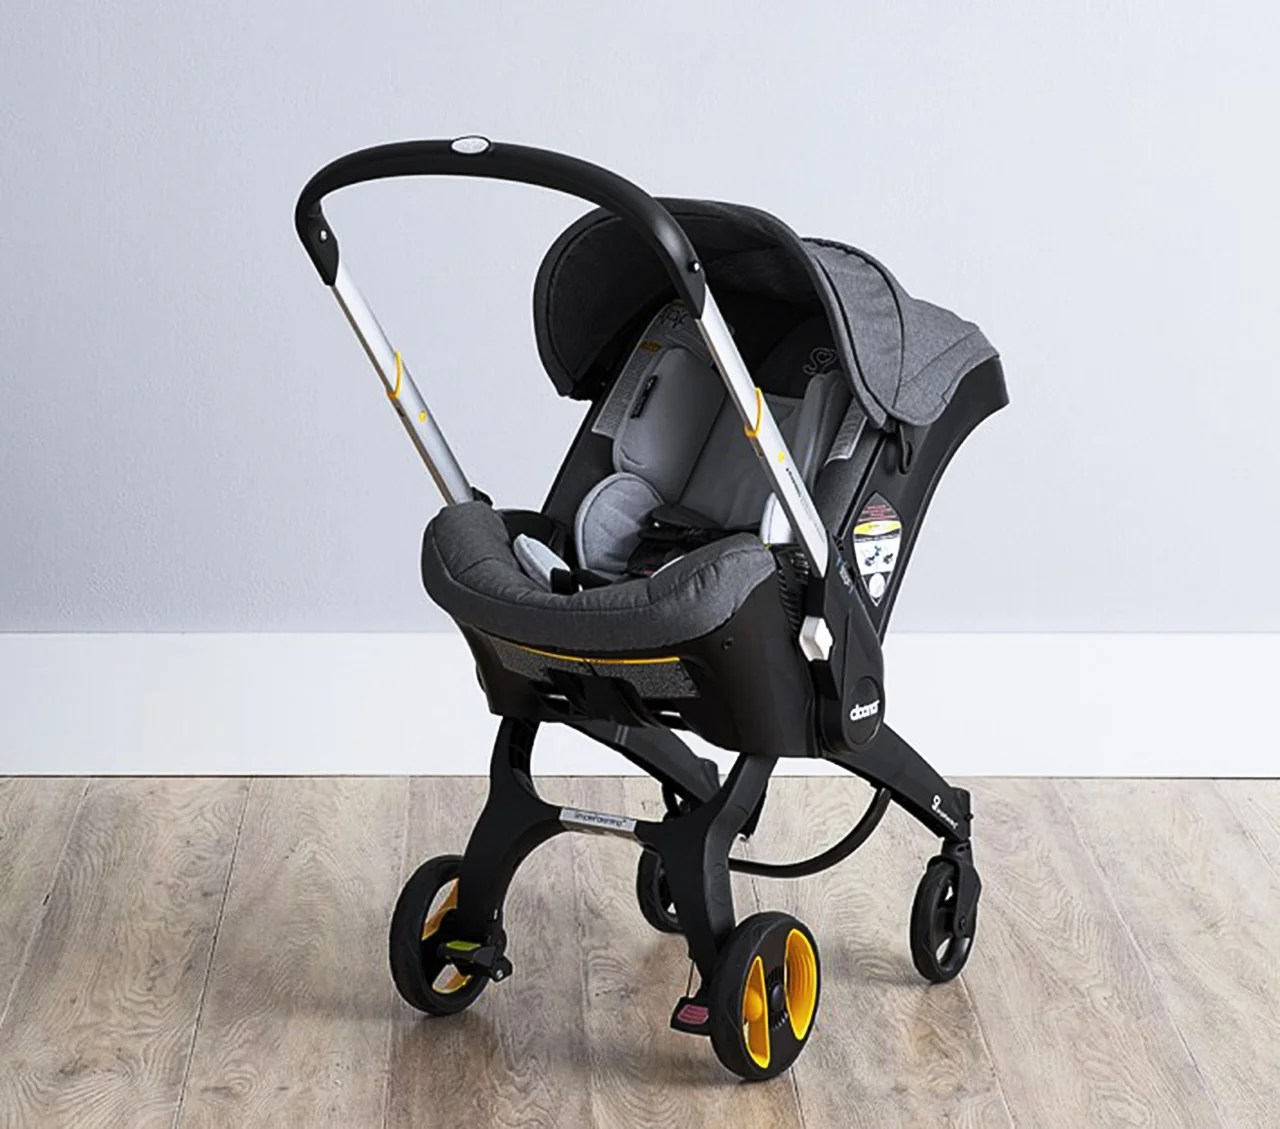 Baby Plus Buggy Meet The Car Seat That Converts Into A Stroller In Seconds